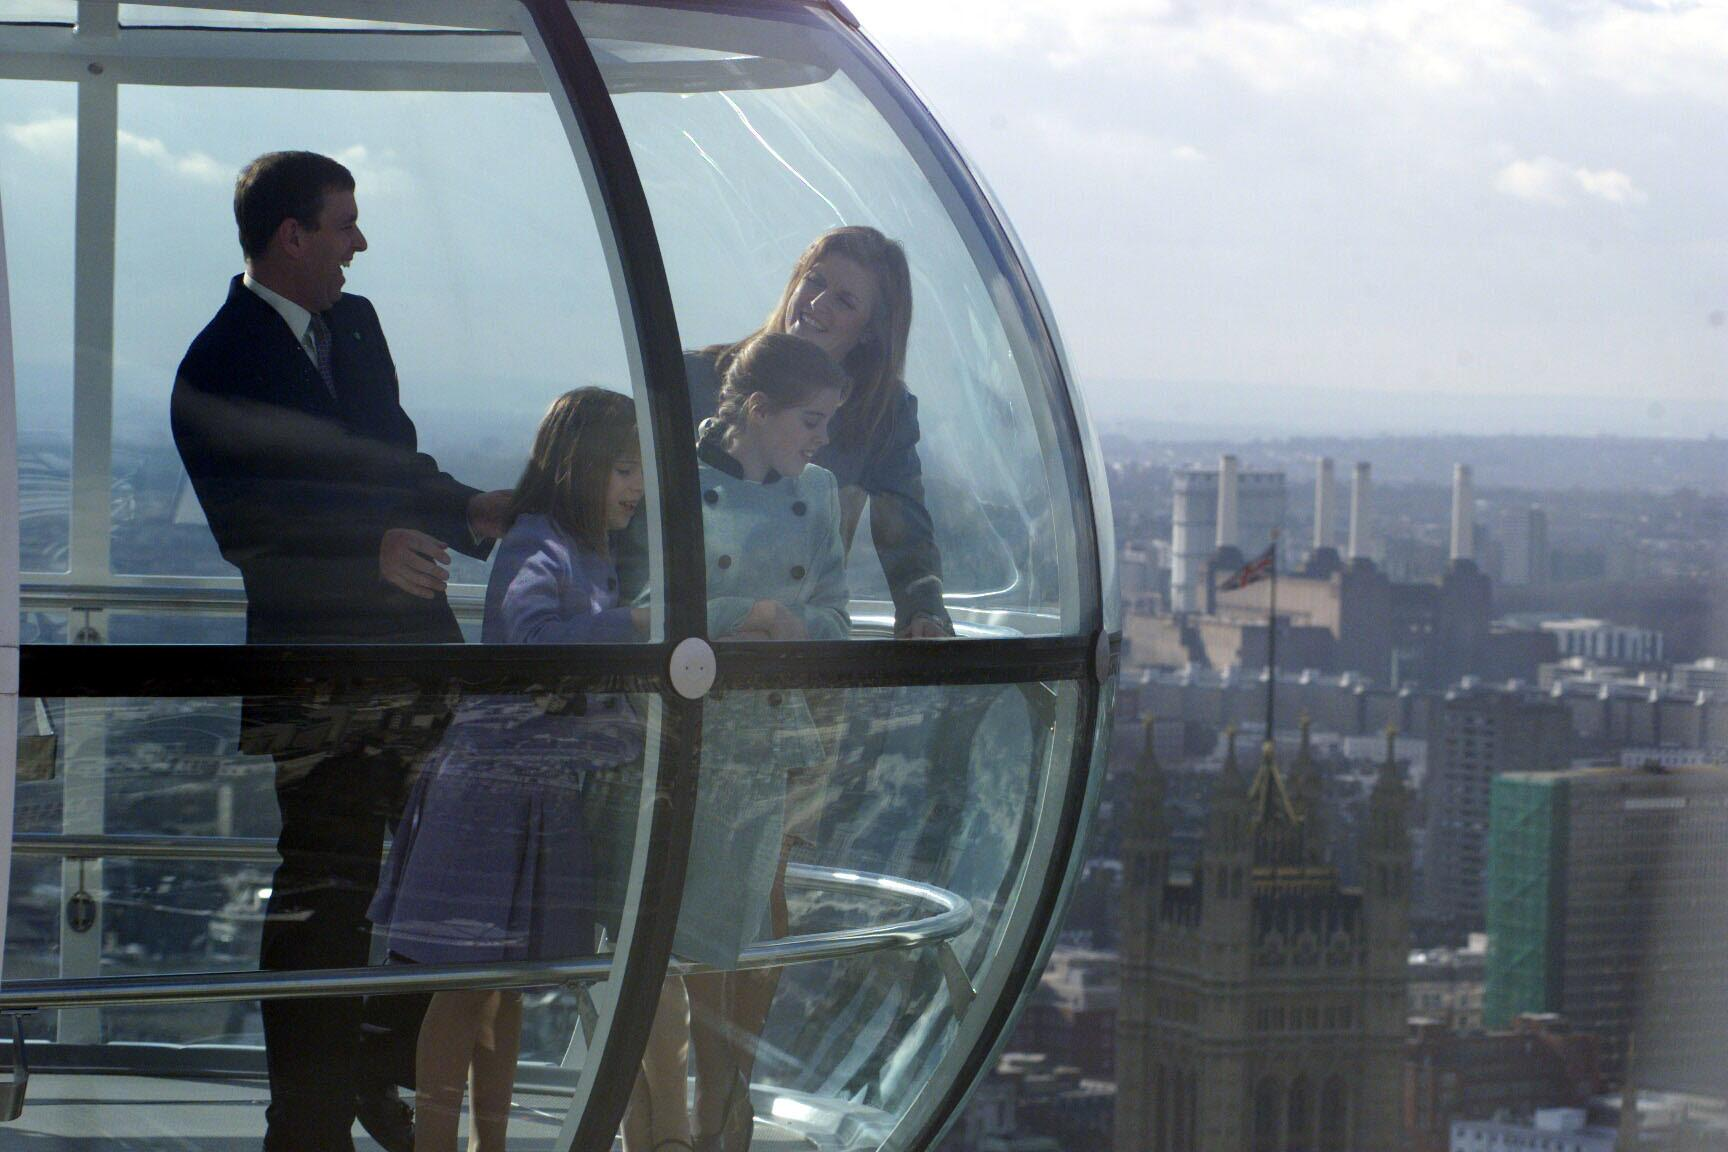 The Duke of York celebrating his 40th birthday high above London in one of the gondolas of the Millennium Wheel with his ex-wife Sarah, Duchess of York, with whom he is still very close, and their daughters Princesses Beatrice and Eugenie.   *The busy birthday is indicative of the Duke, who has said he is convinced that life really does begin at 40.